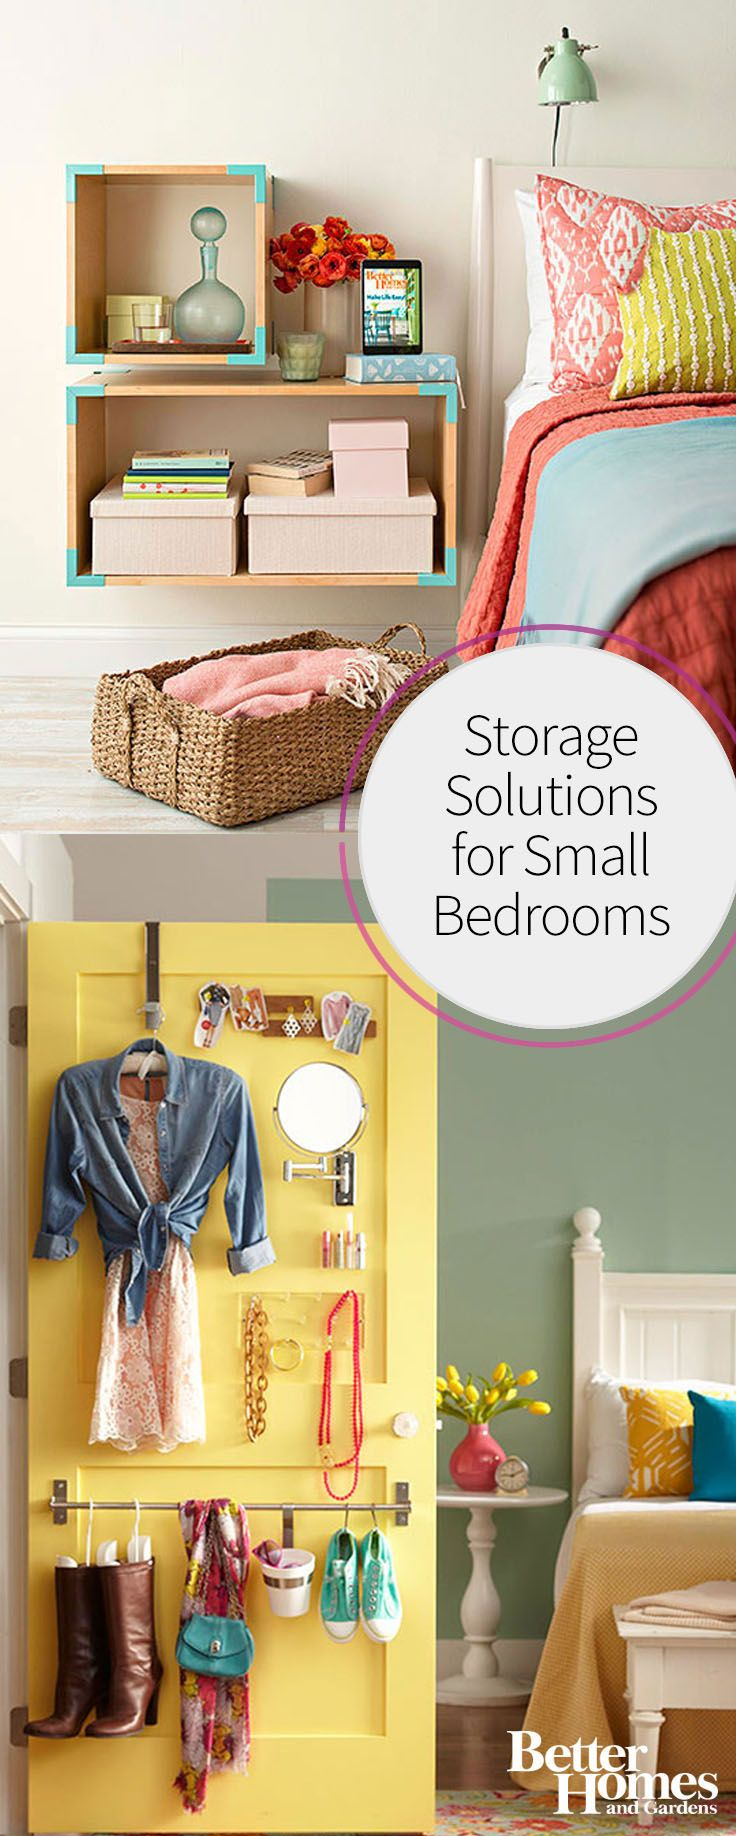 best 25 small bedroom storage ideas on pinterest small 20458 | 77e518b7dc7bfa21ea812f7261cc419c decorating small spaces small bedrooms design